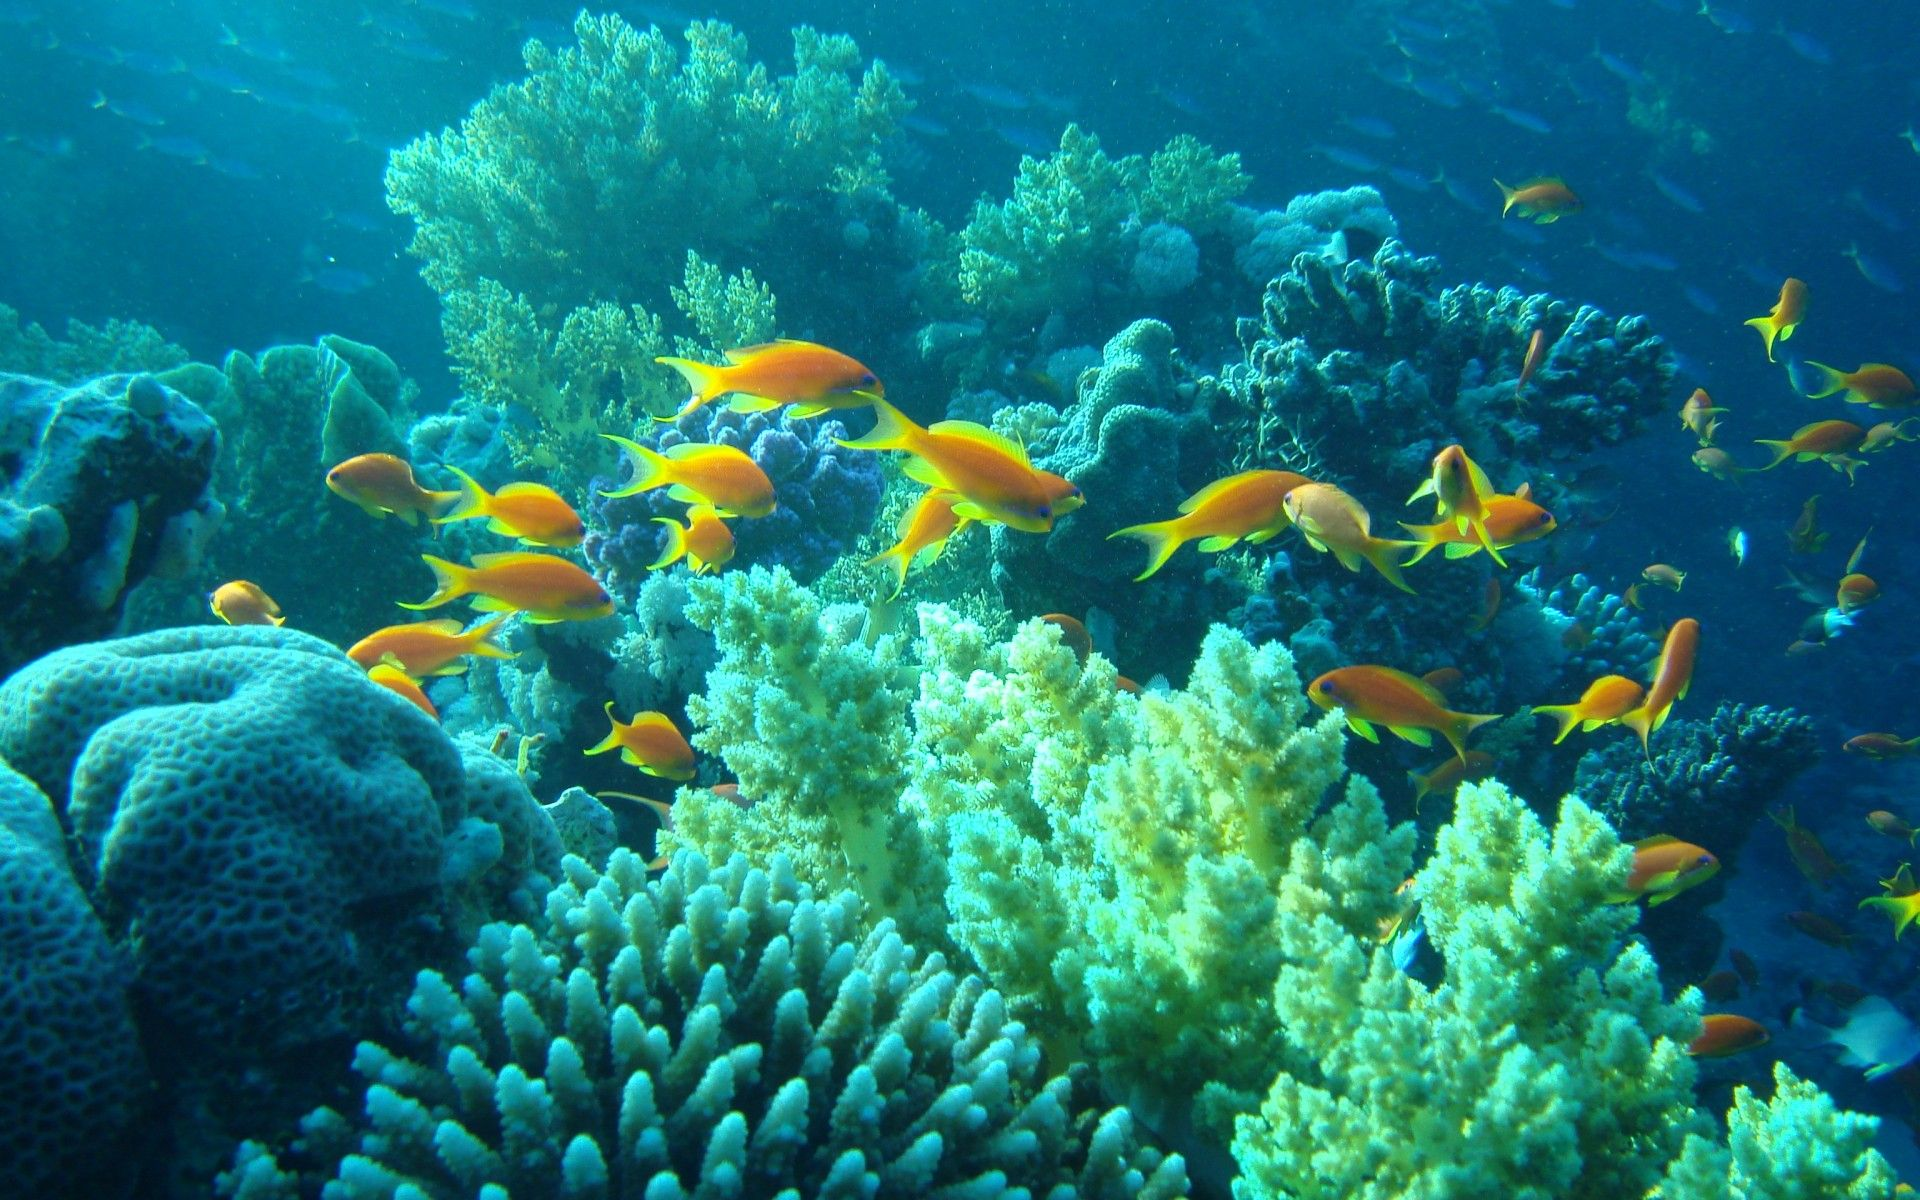 Fish Tank Wallpaper Hd Tropical Fishes Underwater Egypt Sea Ocean Fishes Coral